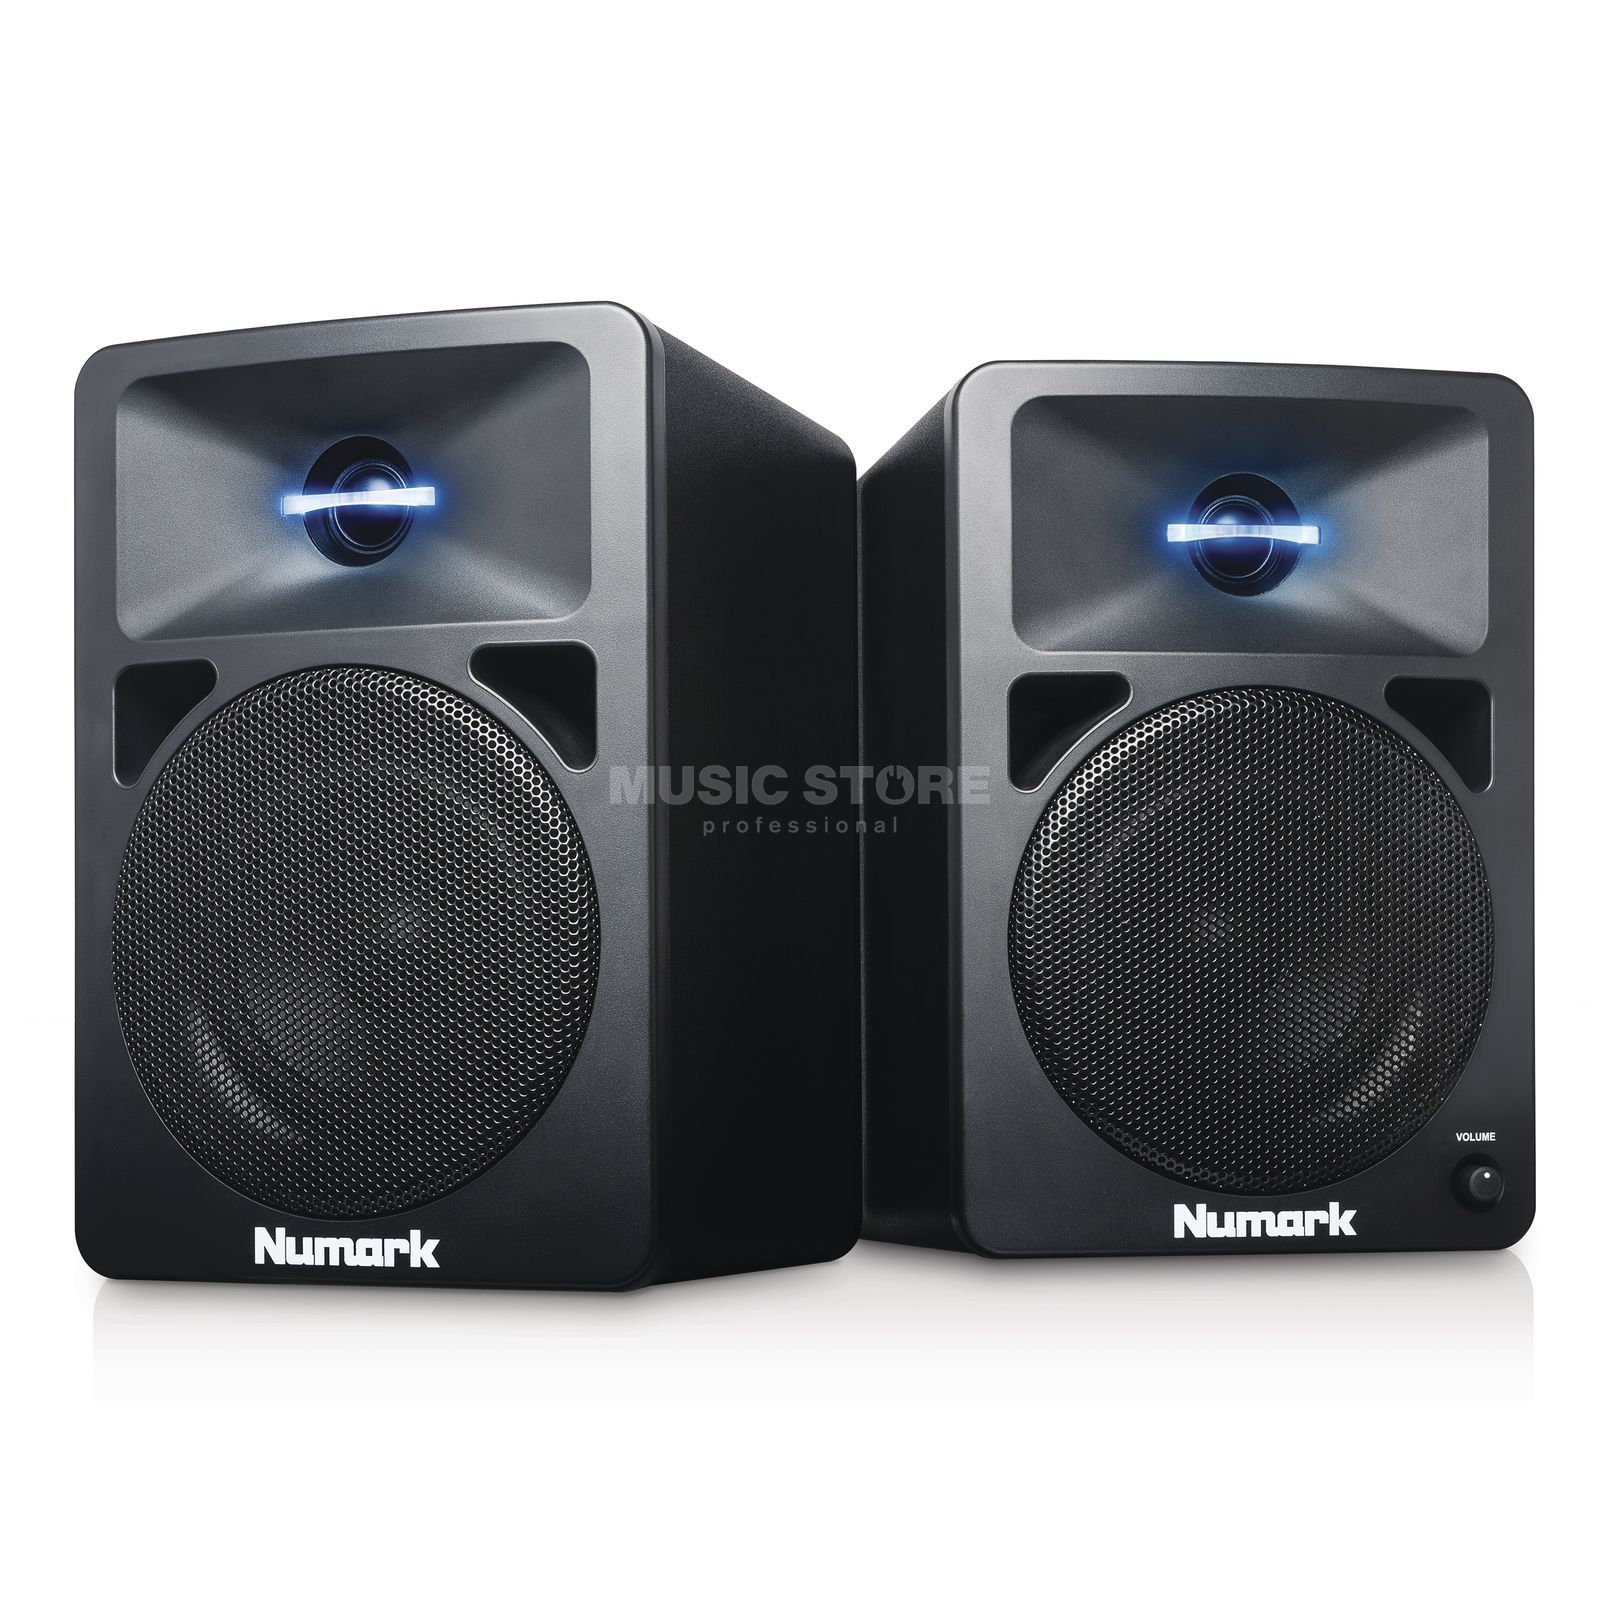 Numark N-WAVE 580 (pair) DJ-Monitors Product Image